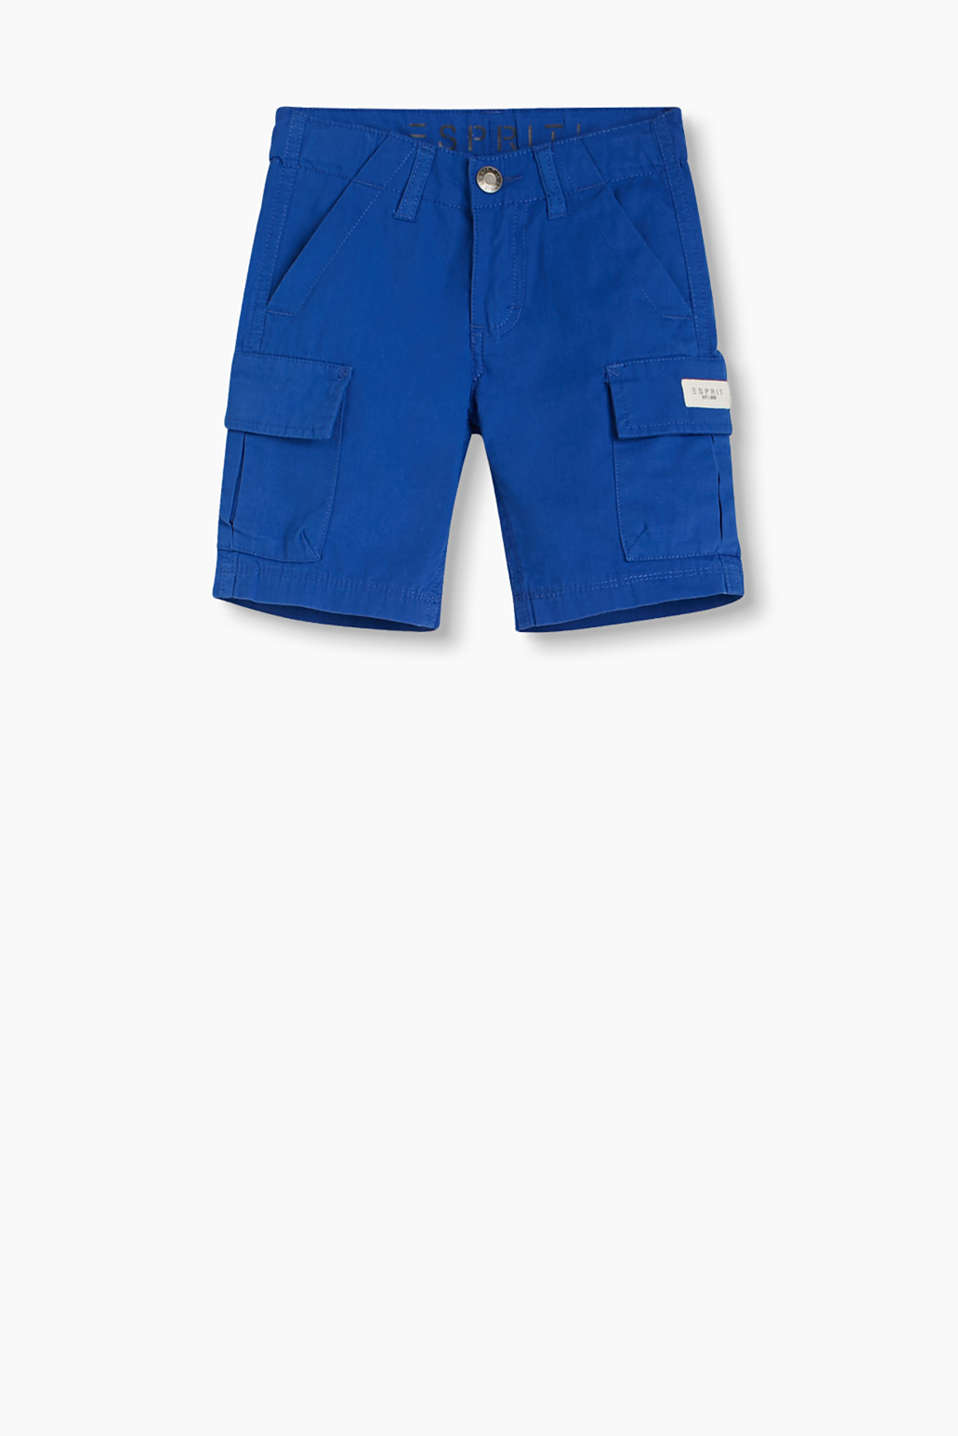 Casual shorts with cool cargo pockets and an adjustable waistband, 100% cotton